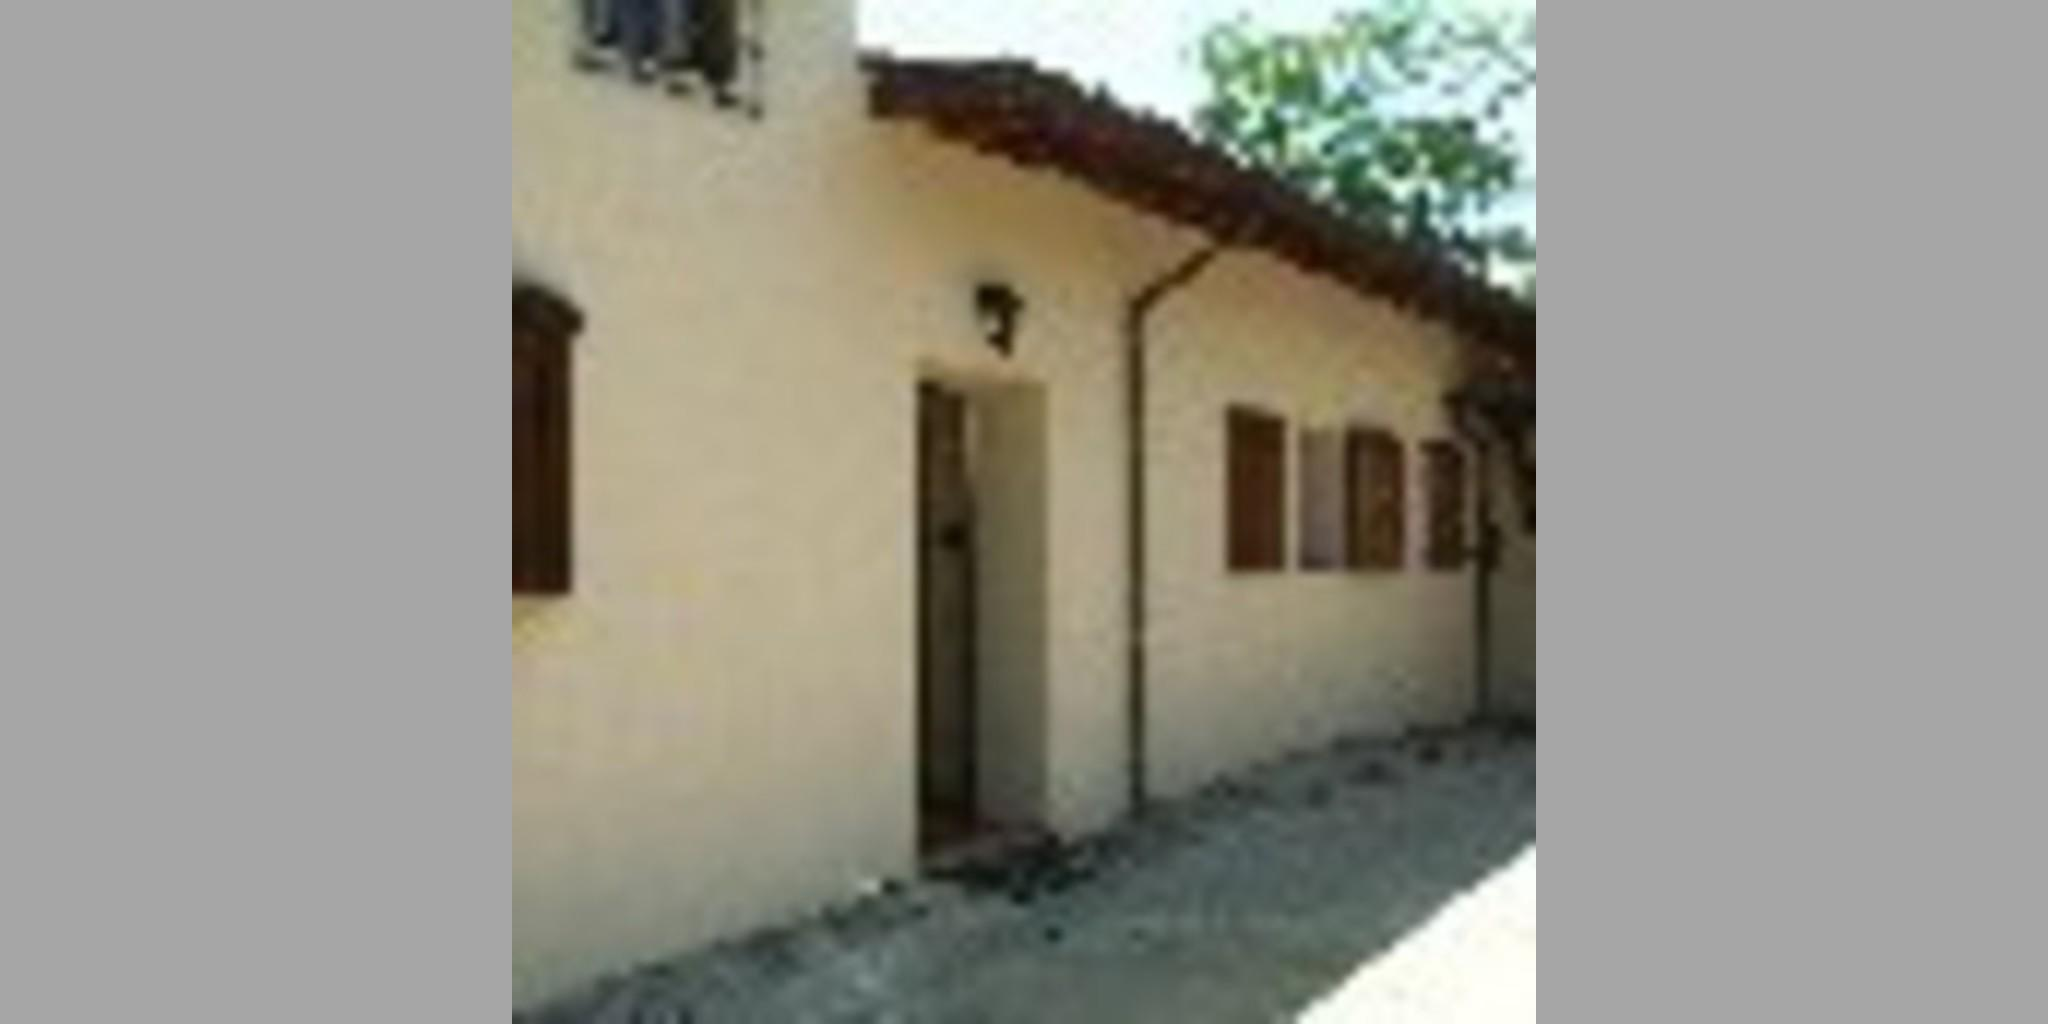 Bed & Breakfast Incisa In Val D'Arno - Santa Maria Maddalena1